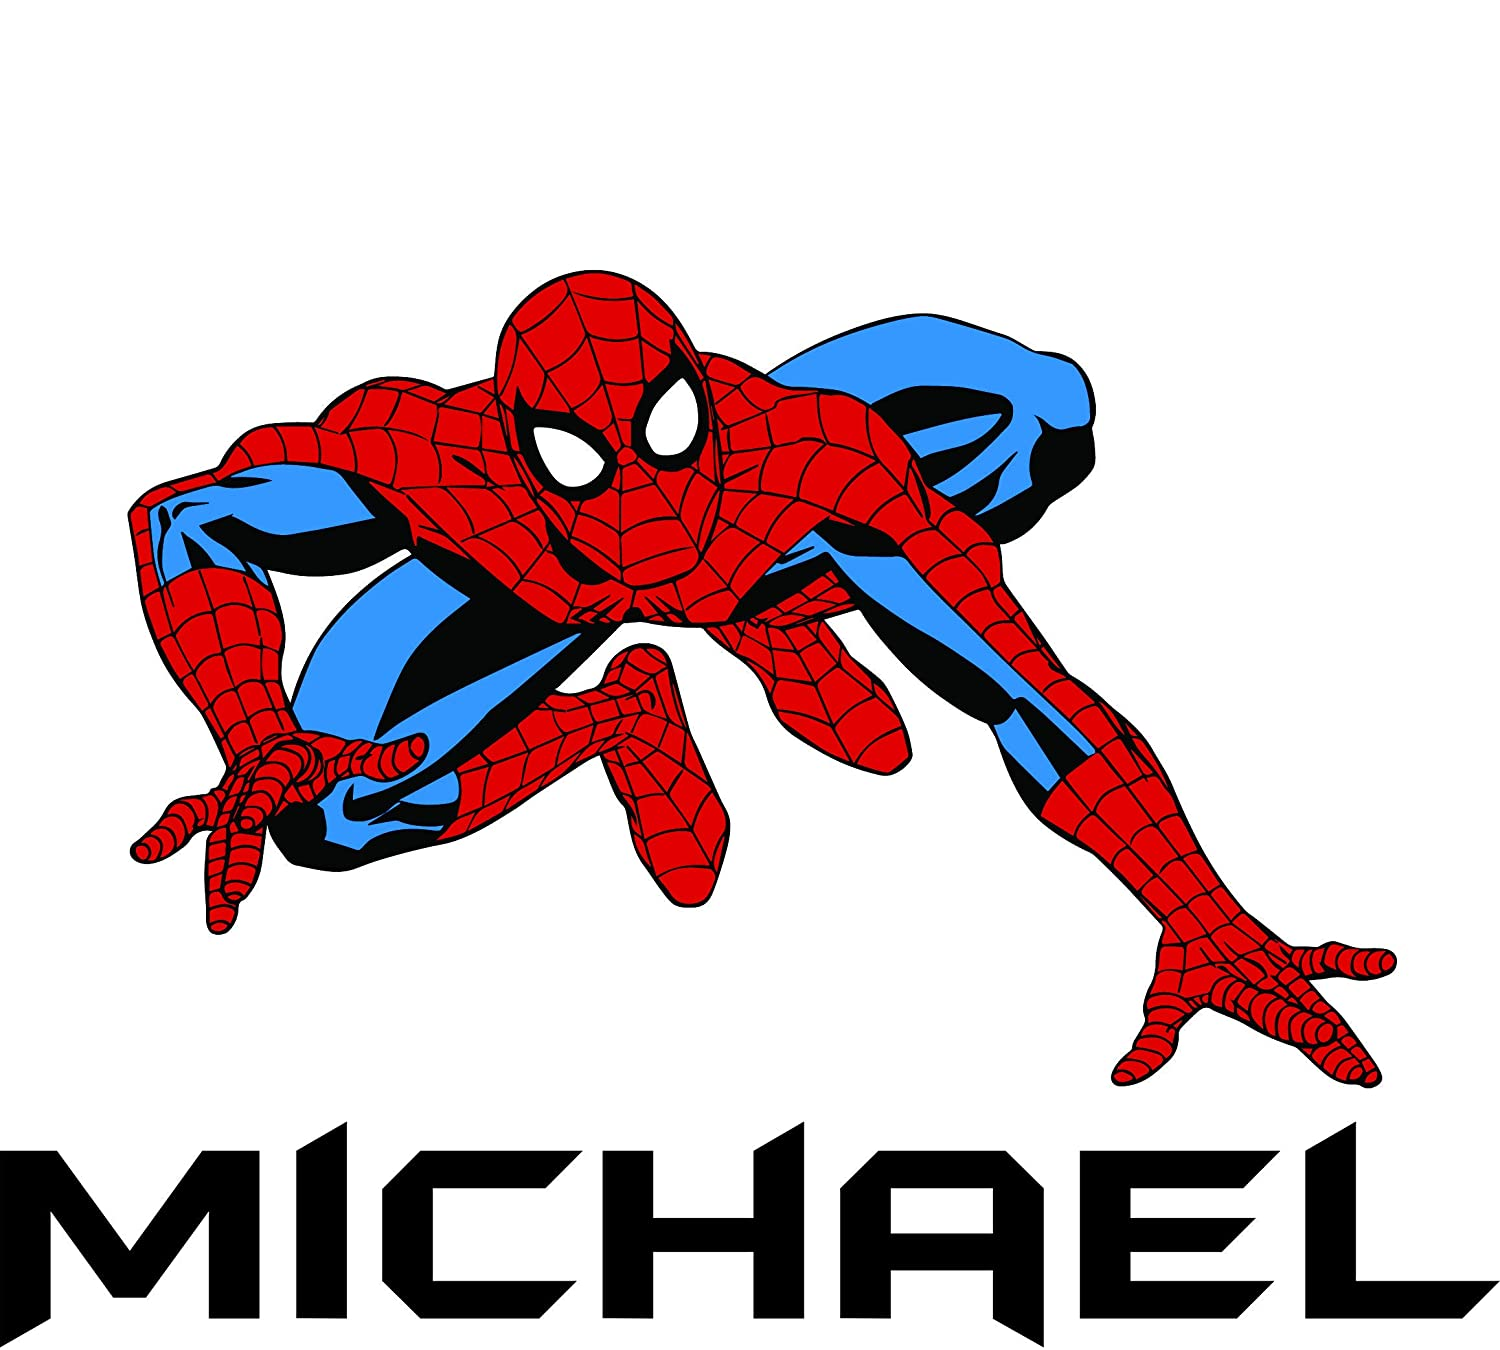 Spider Man Design Boys Personalized Name Custom Name Wall Decals for Bedrooms/Spiderman Kids Childrens Cartoon Cartoons Design Decoration for Wall Walls Fun Colorful Art Stickers Size 13x16 inches